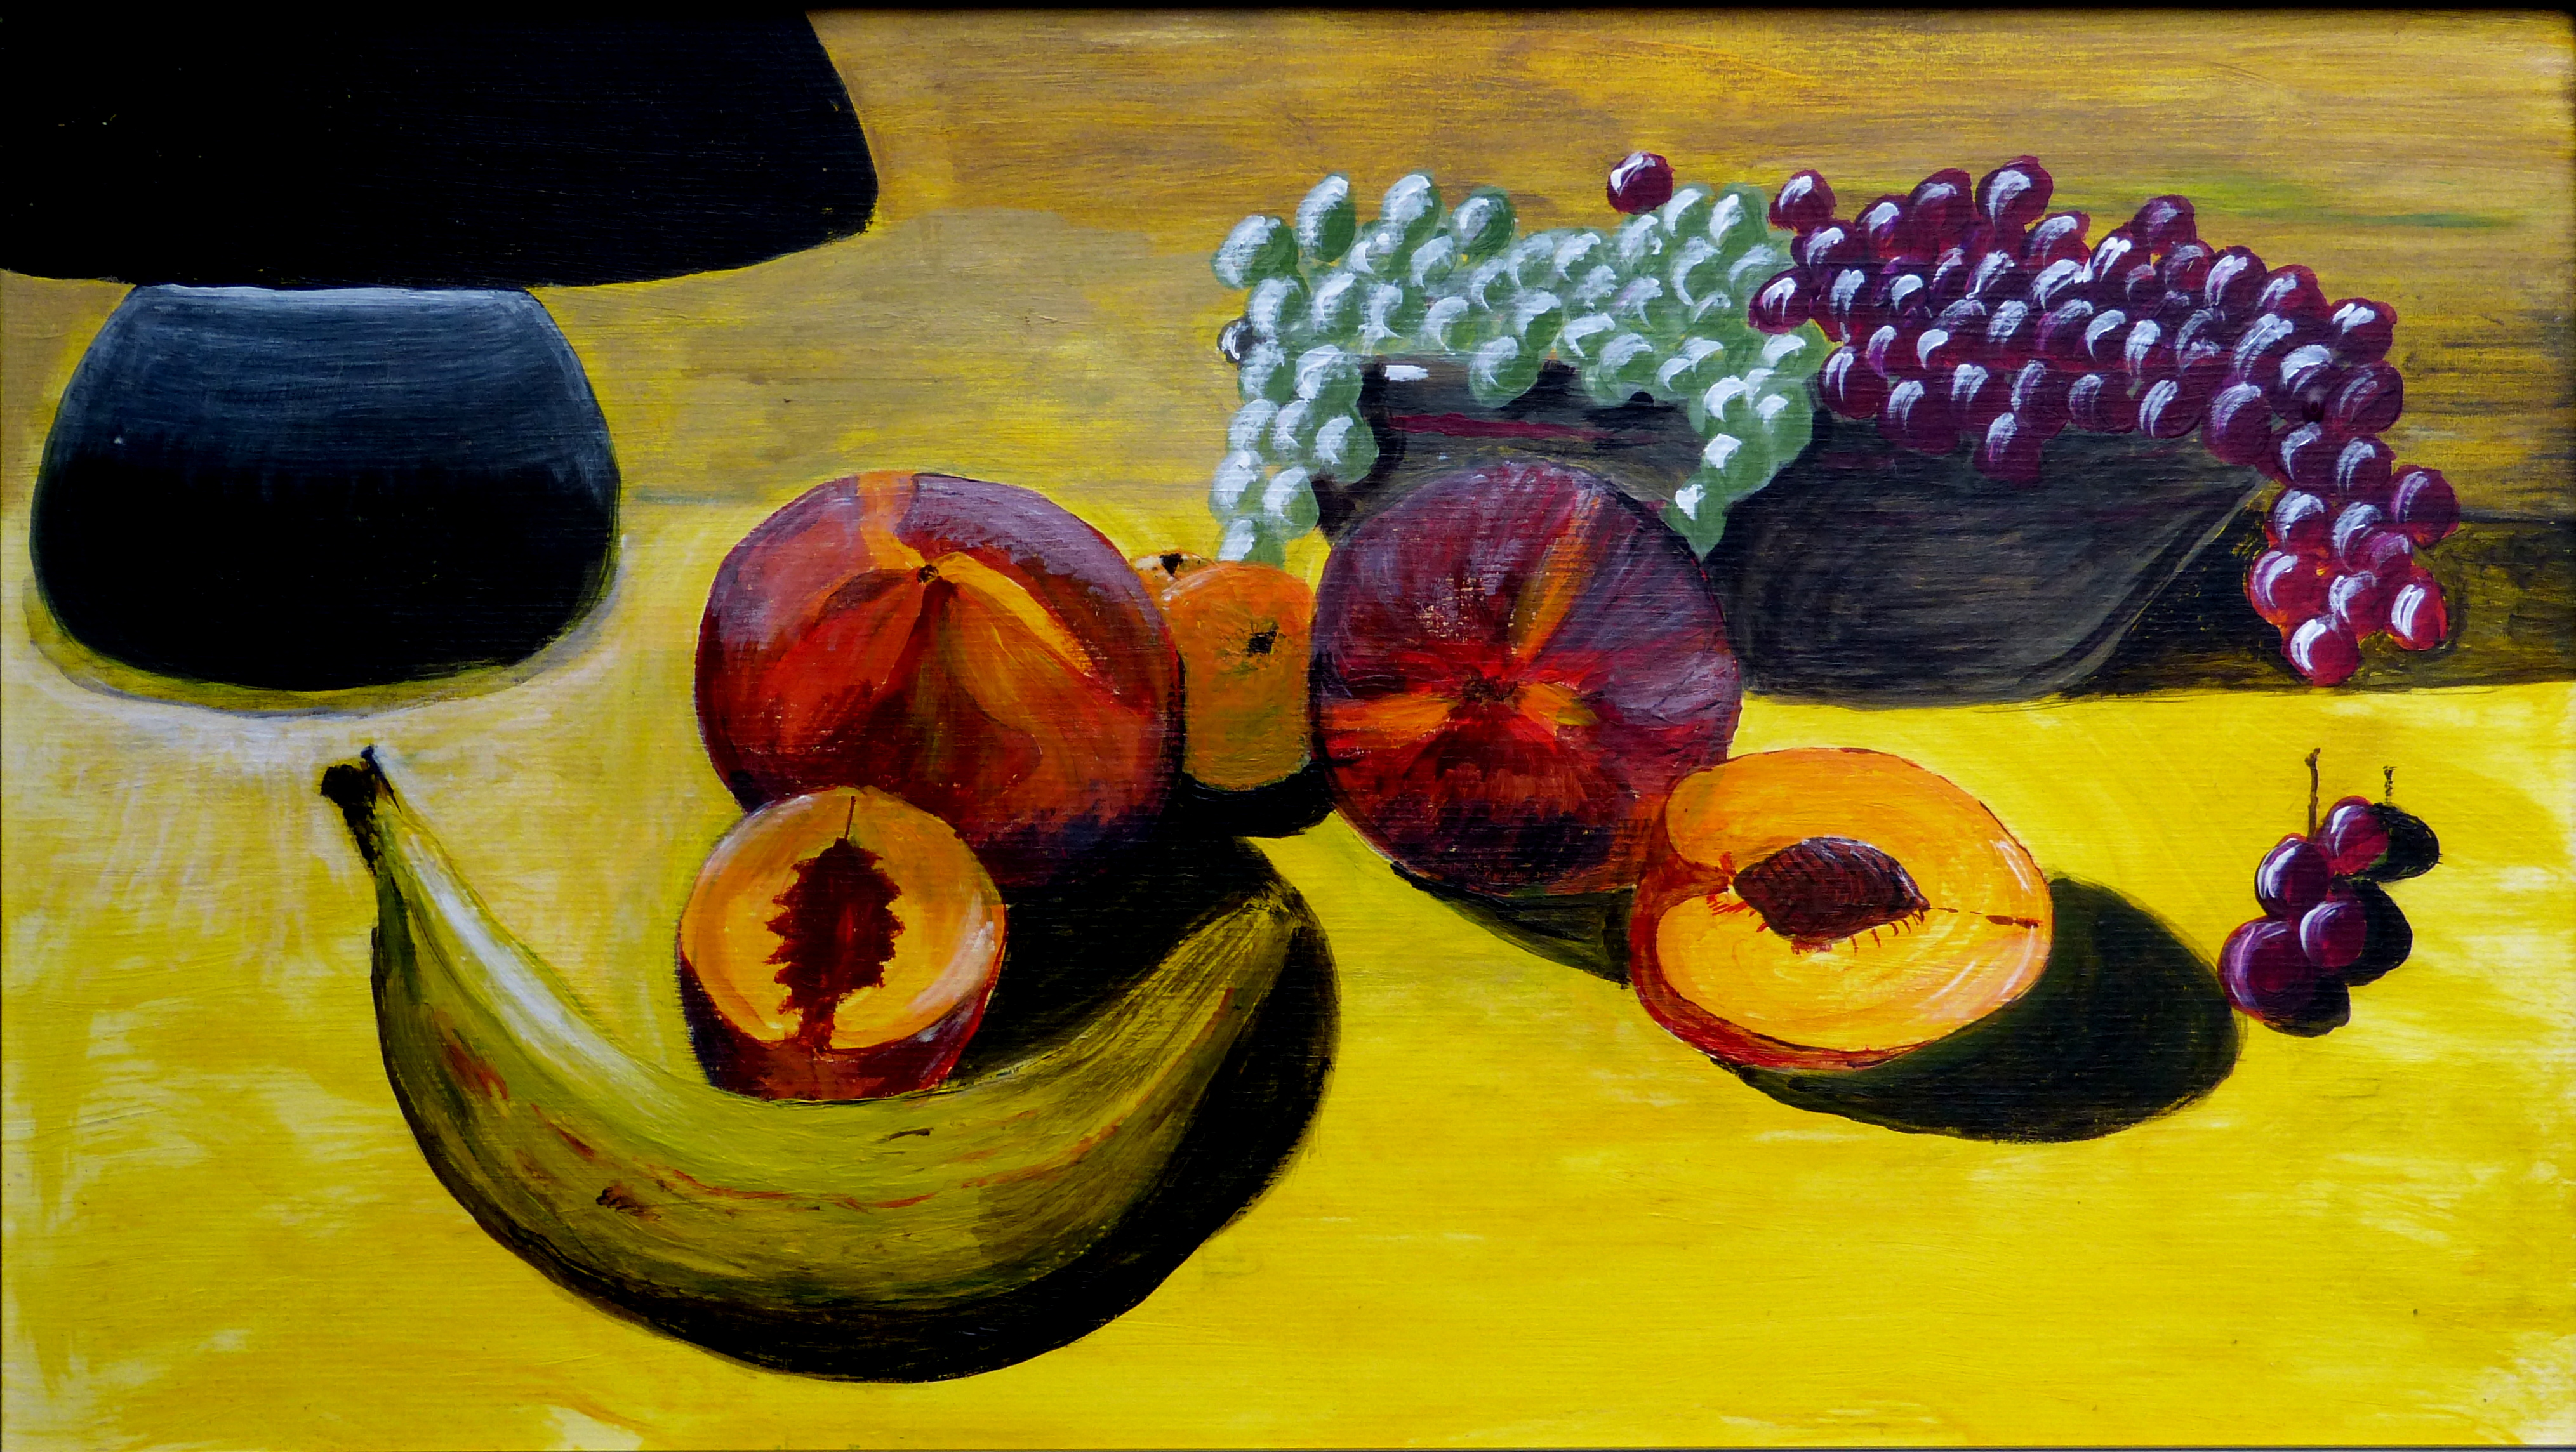 Still life of fruit under lamp light